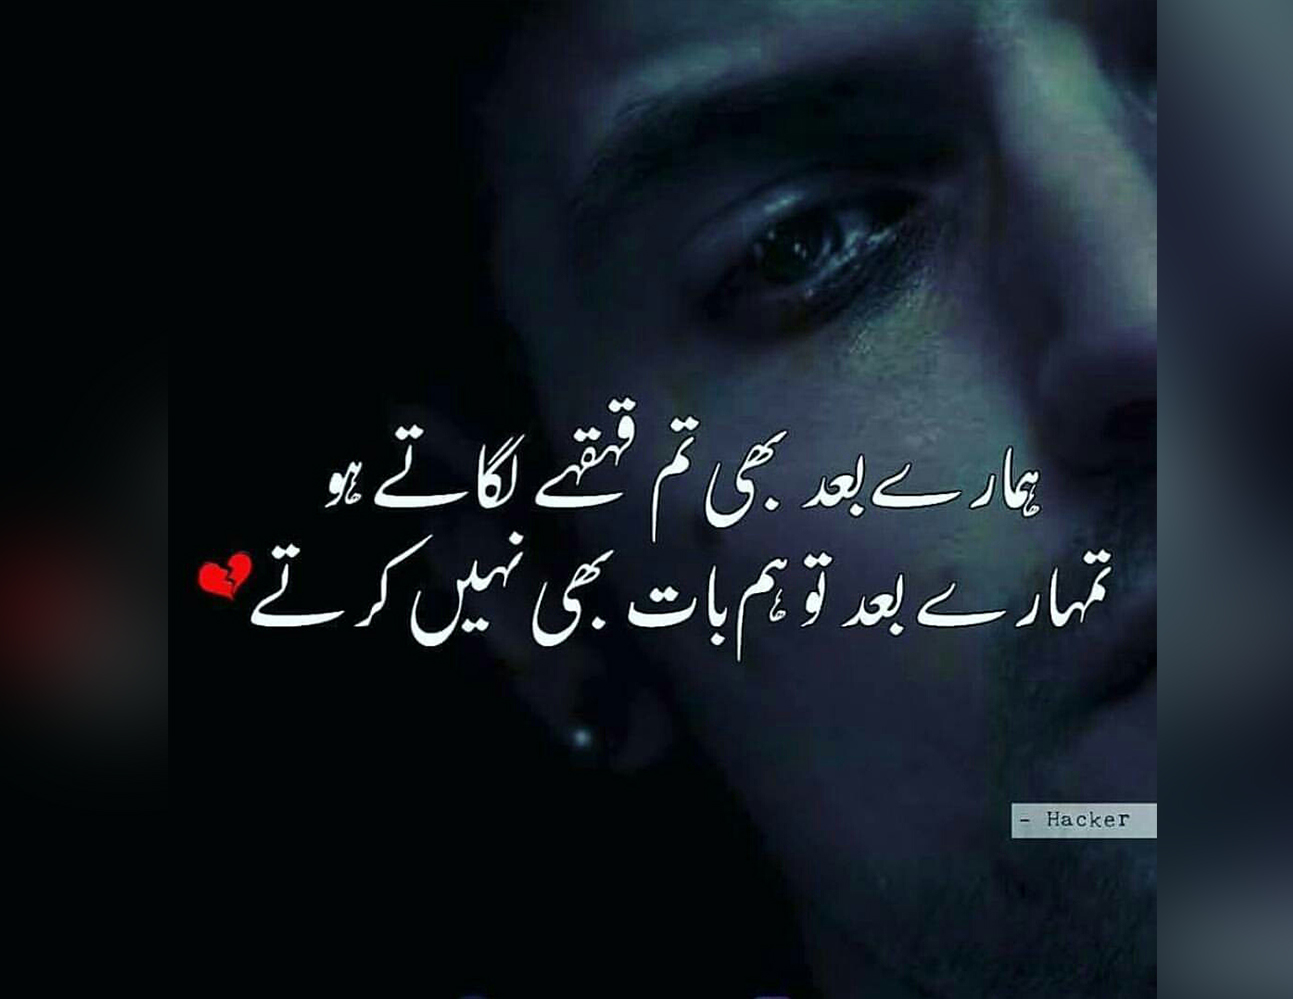 Beautiful Wallpapers With Quotes In Urdu Awesome And Sad Urdu Poetry Images 2 Line Urdu Thoughts